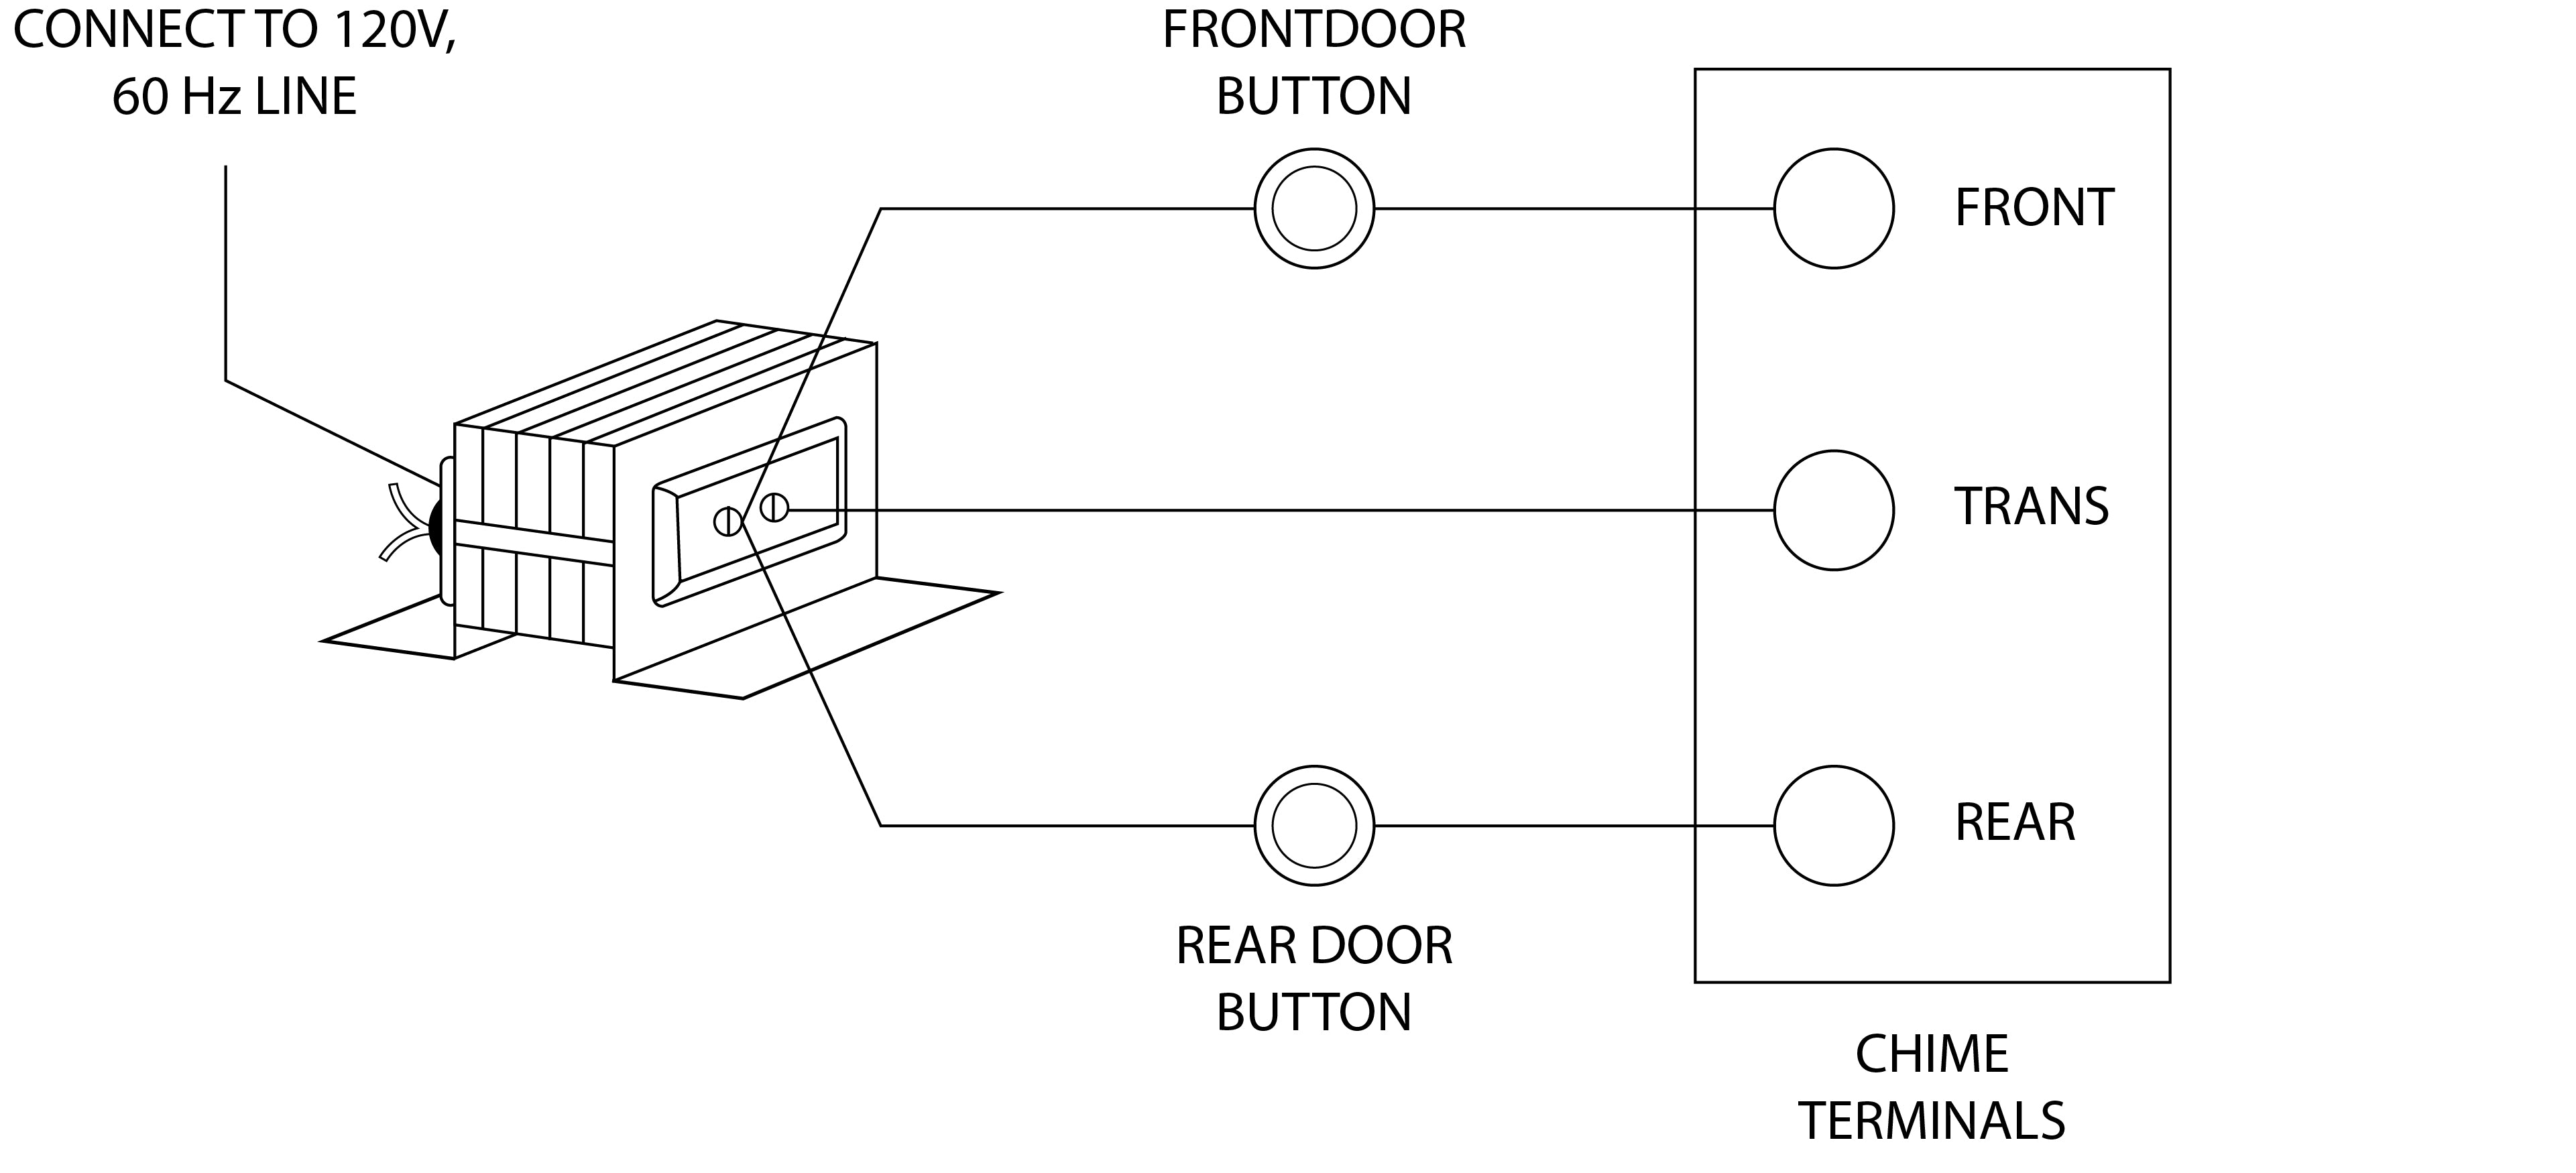 Broan Nutone Doorbell Wiring Diagram 36 Images Fasco Diagrams 500327 Two At